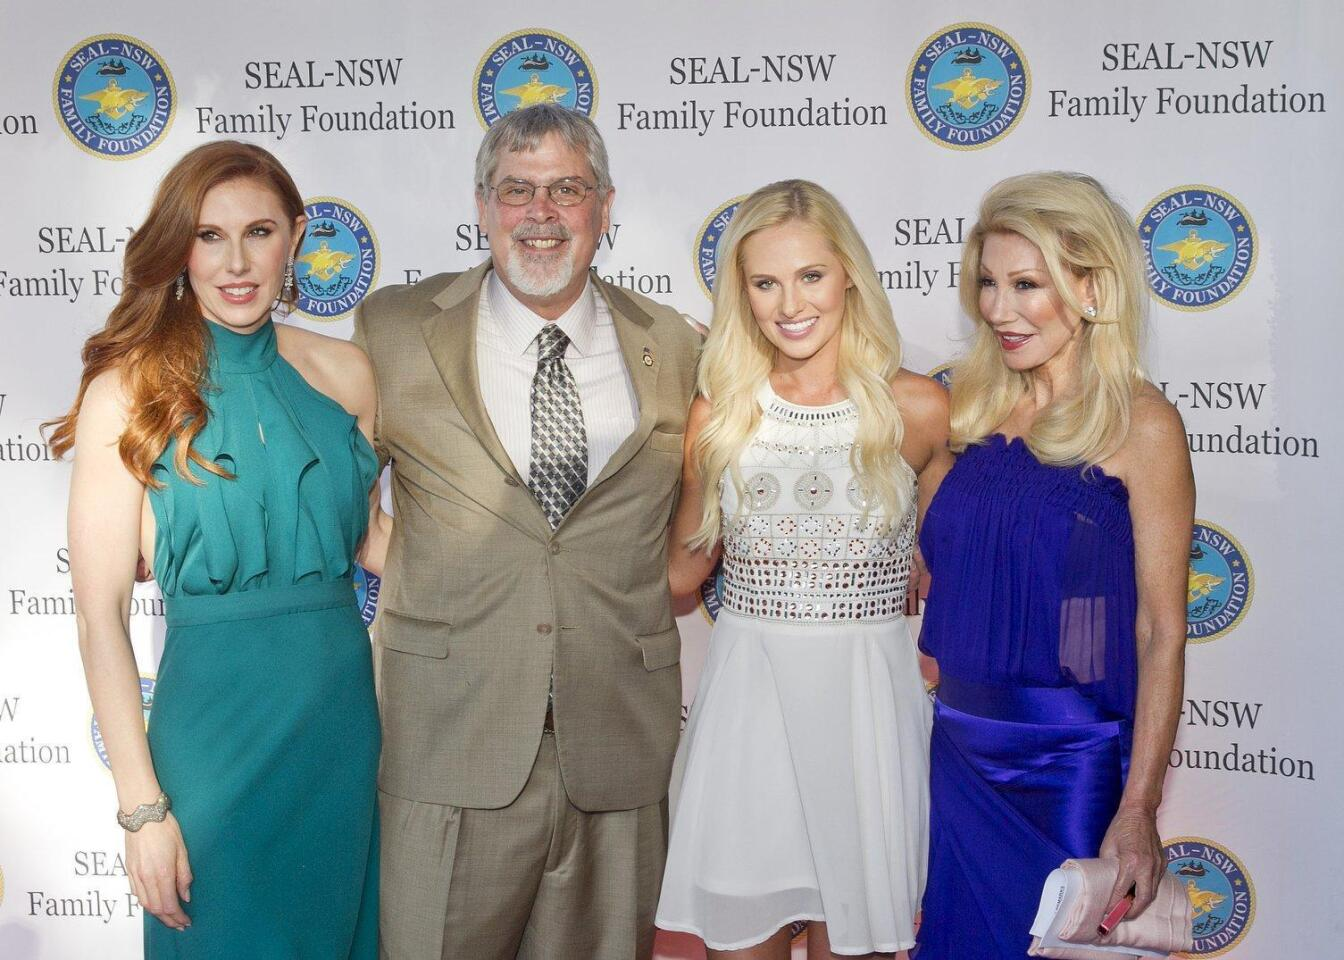 Dominique Plewes, guest speakers Capt. Richard Phillips and Tomi Lahren, Madeleine Pickens